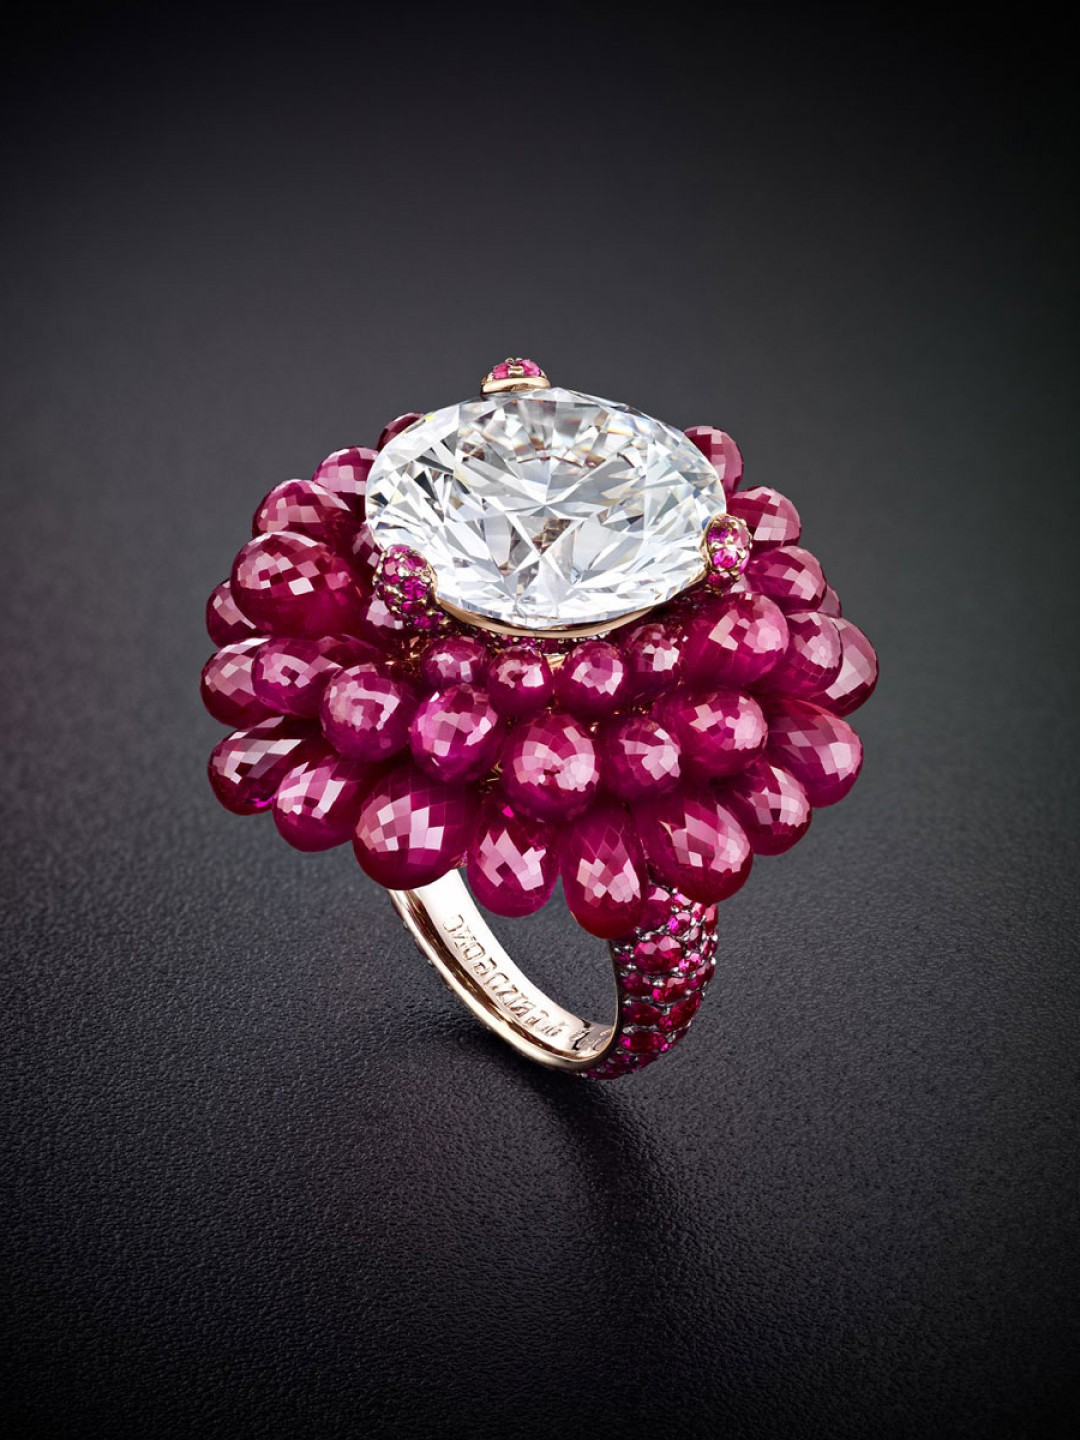 Beautiful Ruby Rings For The Ring Ceremony 26